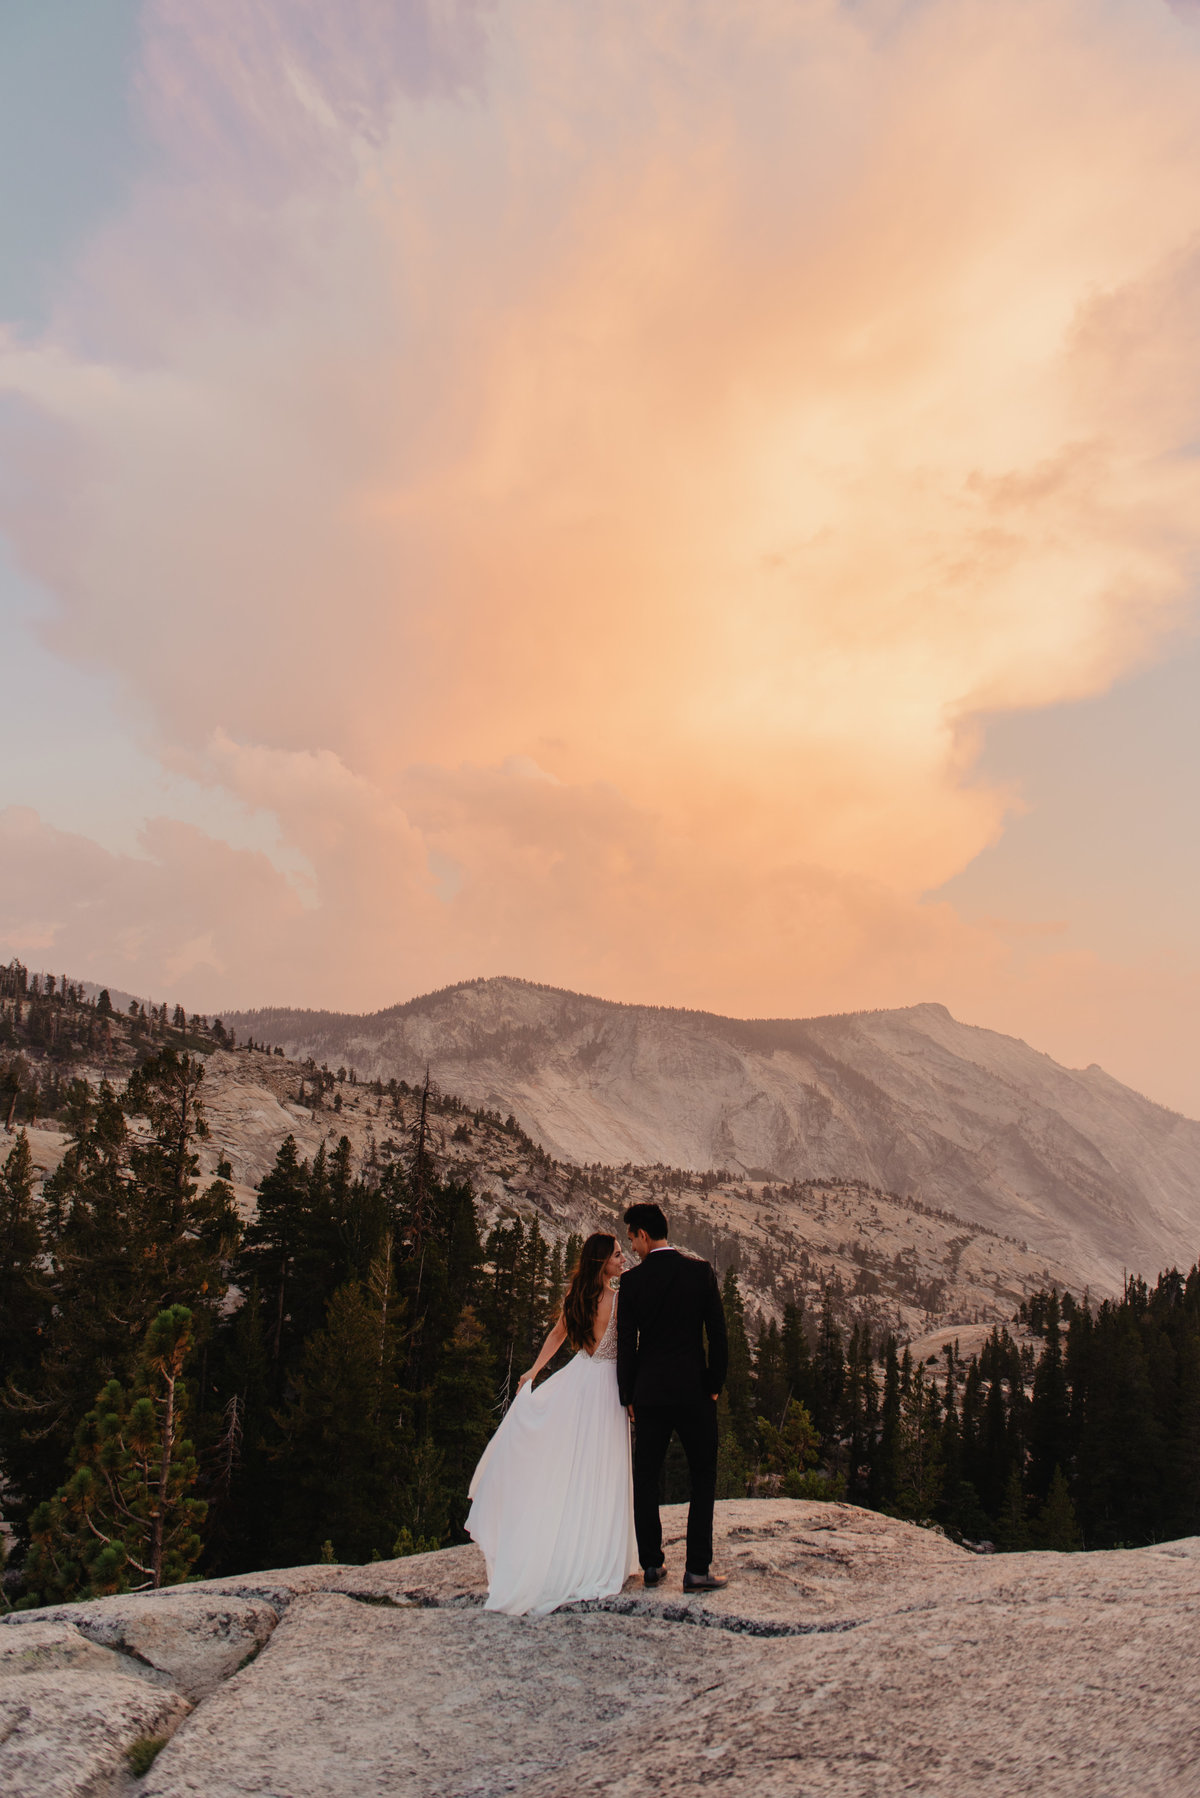 Sunshine_Shannon_Photography_Yosemite_romantic_elopement-4733